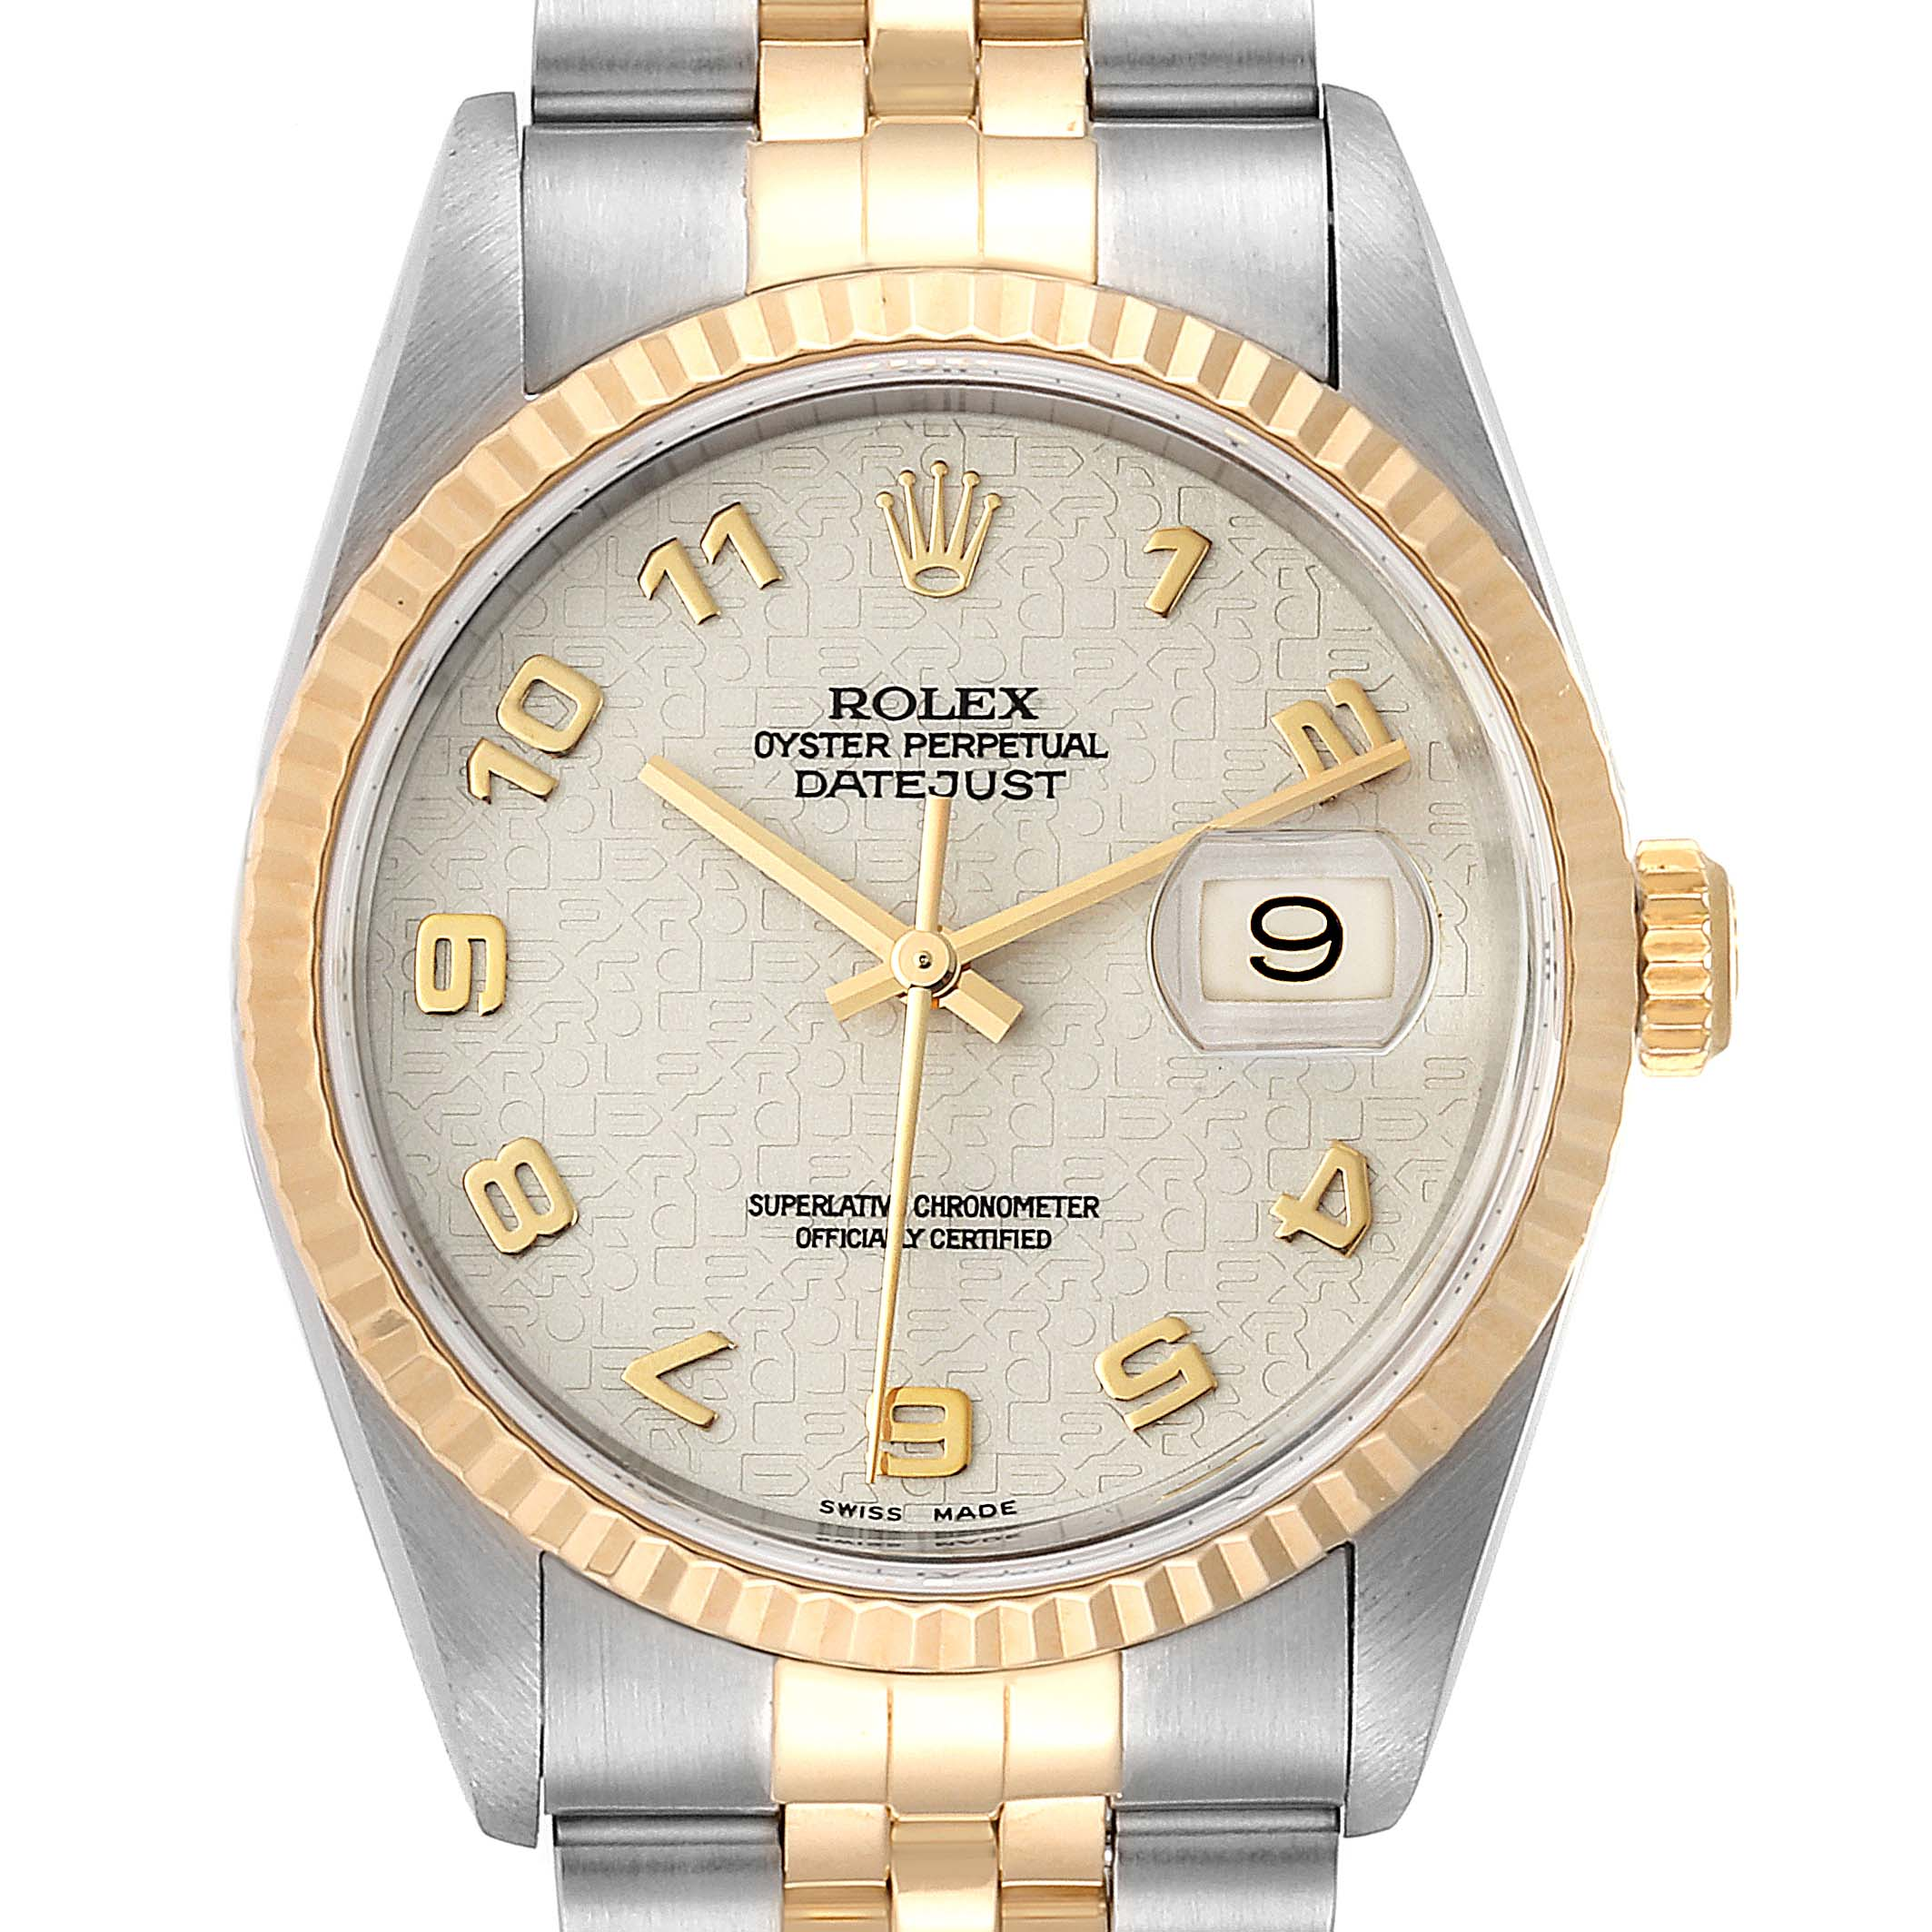 Rolex Datejust Steel 18K Yellow Gold Mens Watch 16233 Box Papers